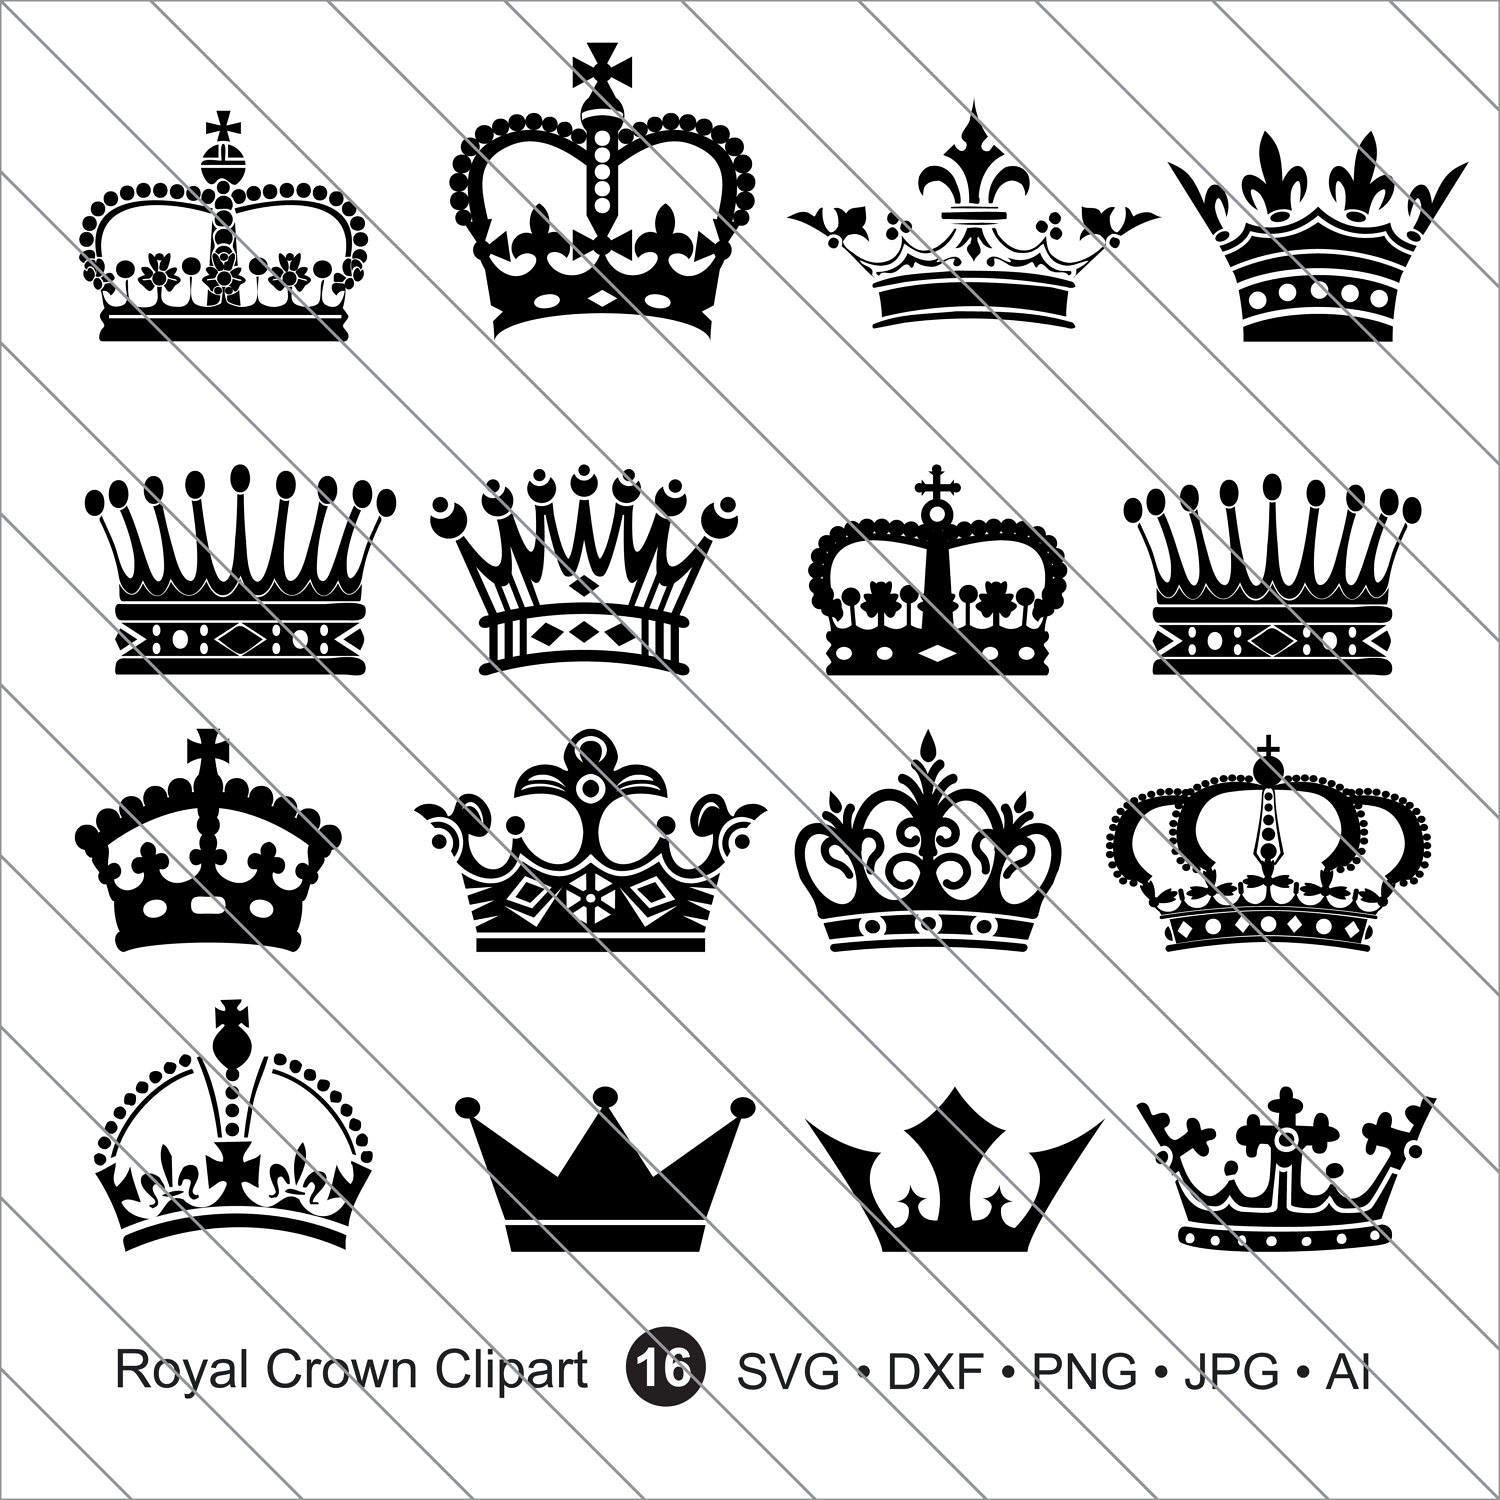 Royal Crown Silhouettes Svg Crown Silhouettes Clipartroyal Etsy Crown Tattoo Design Crown Silhouette Crown Drawing